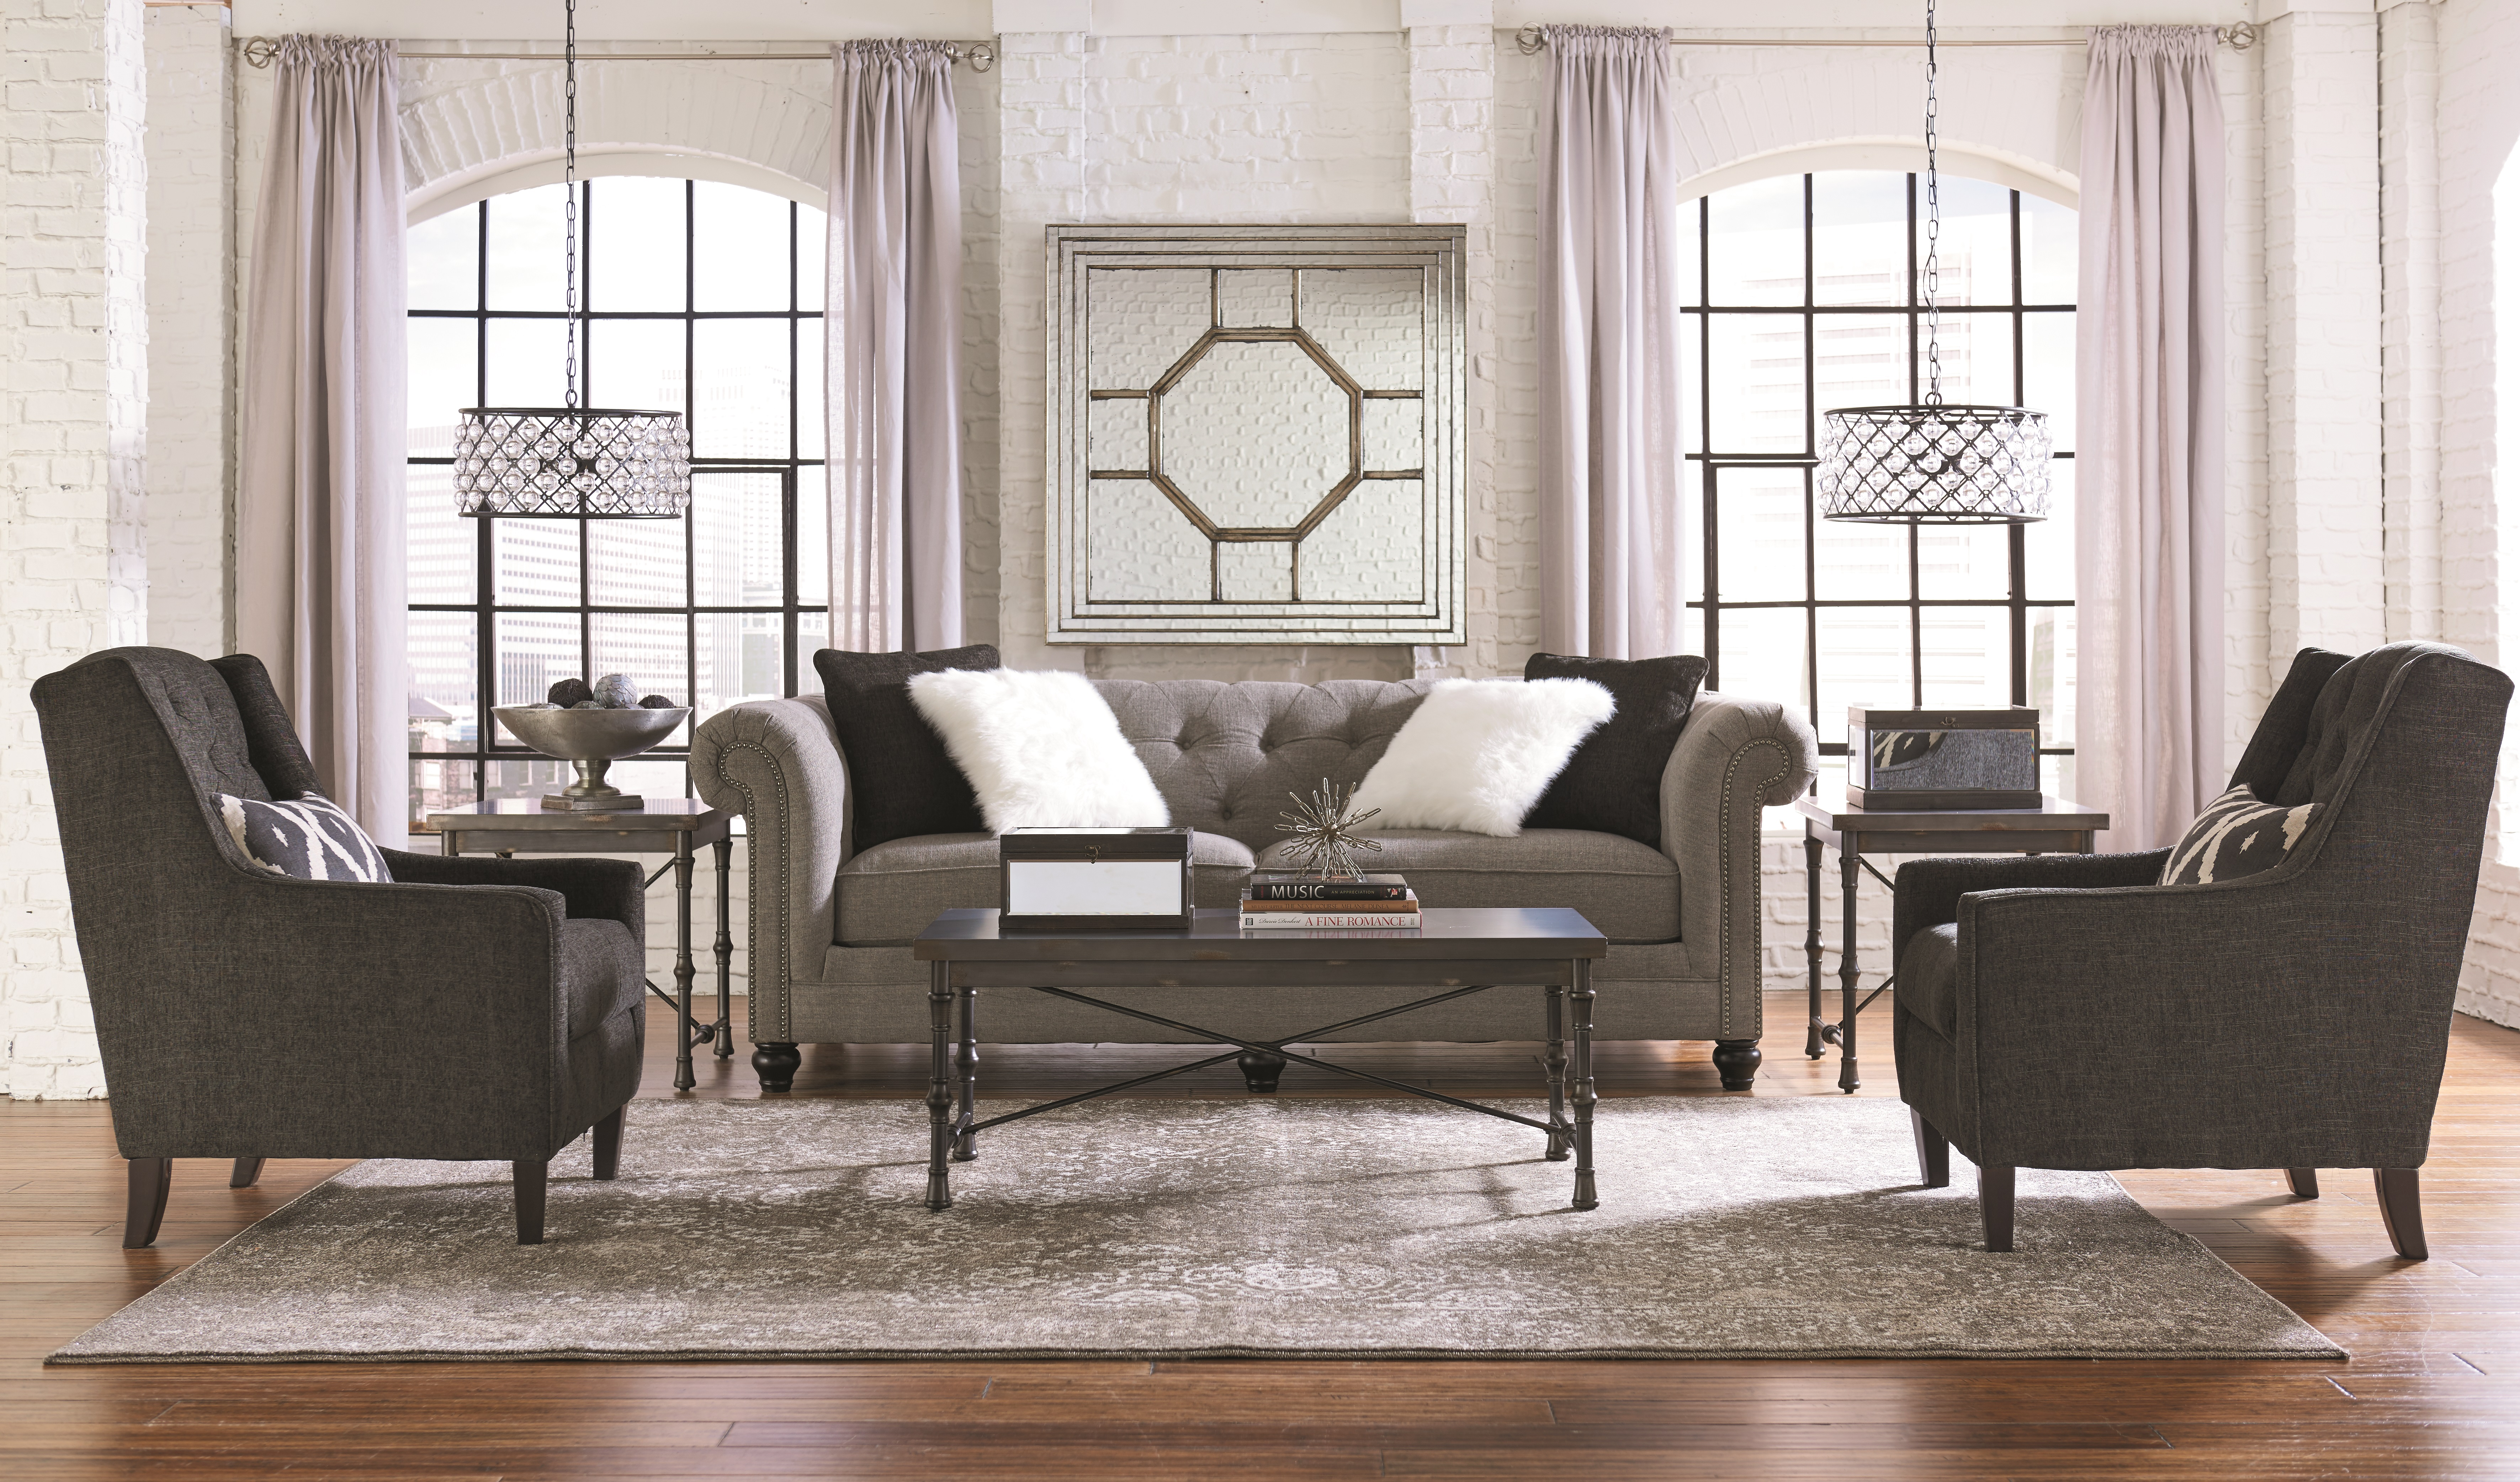 4 Tips For Making A Small Family Room Feel Larger